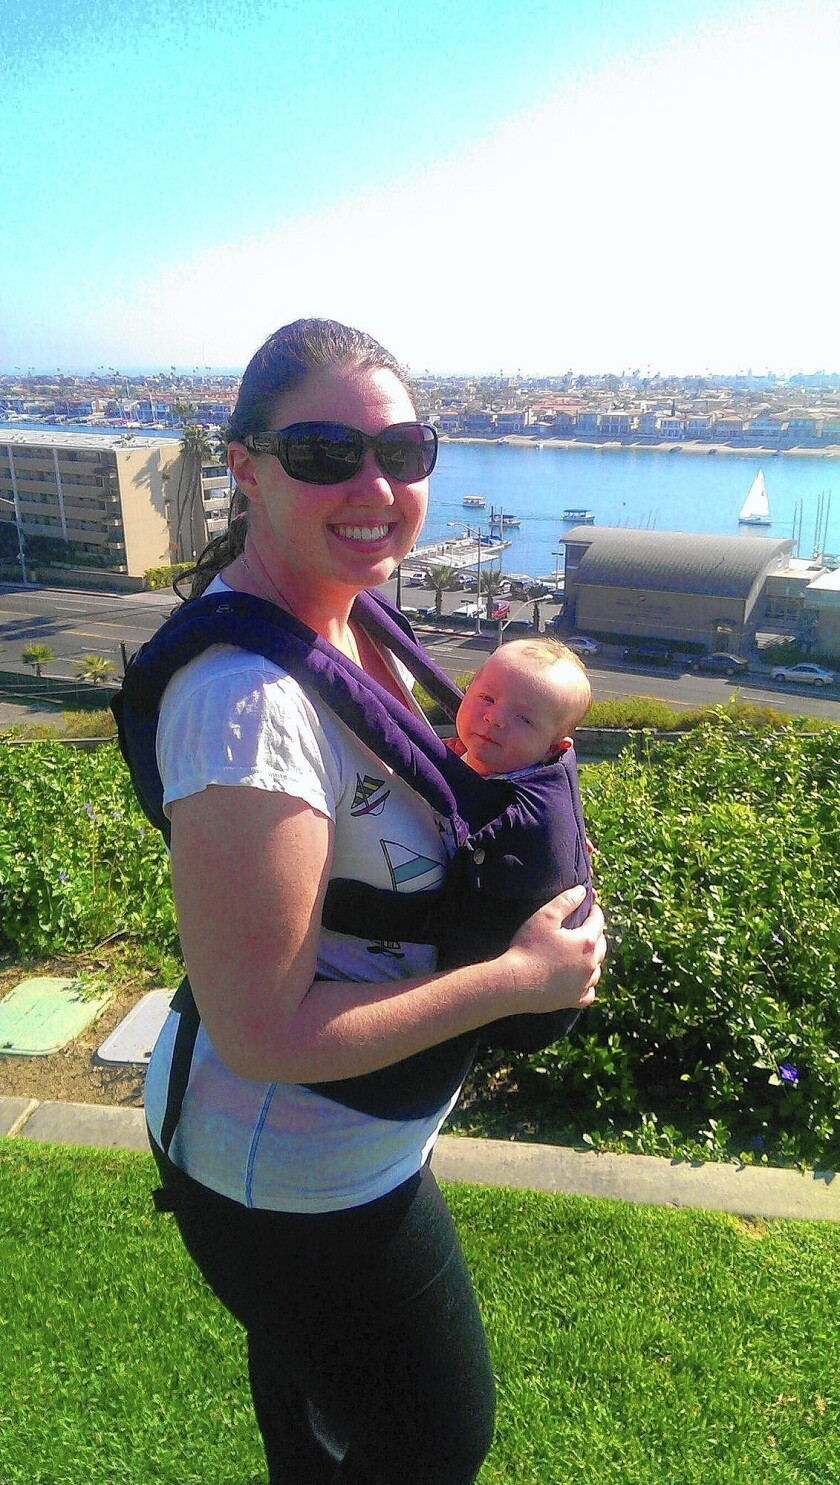 Newport woman finds herself at center of breastfeeding flap